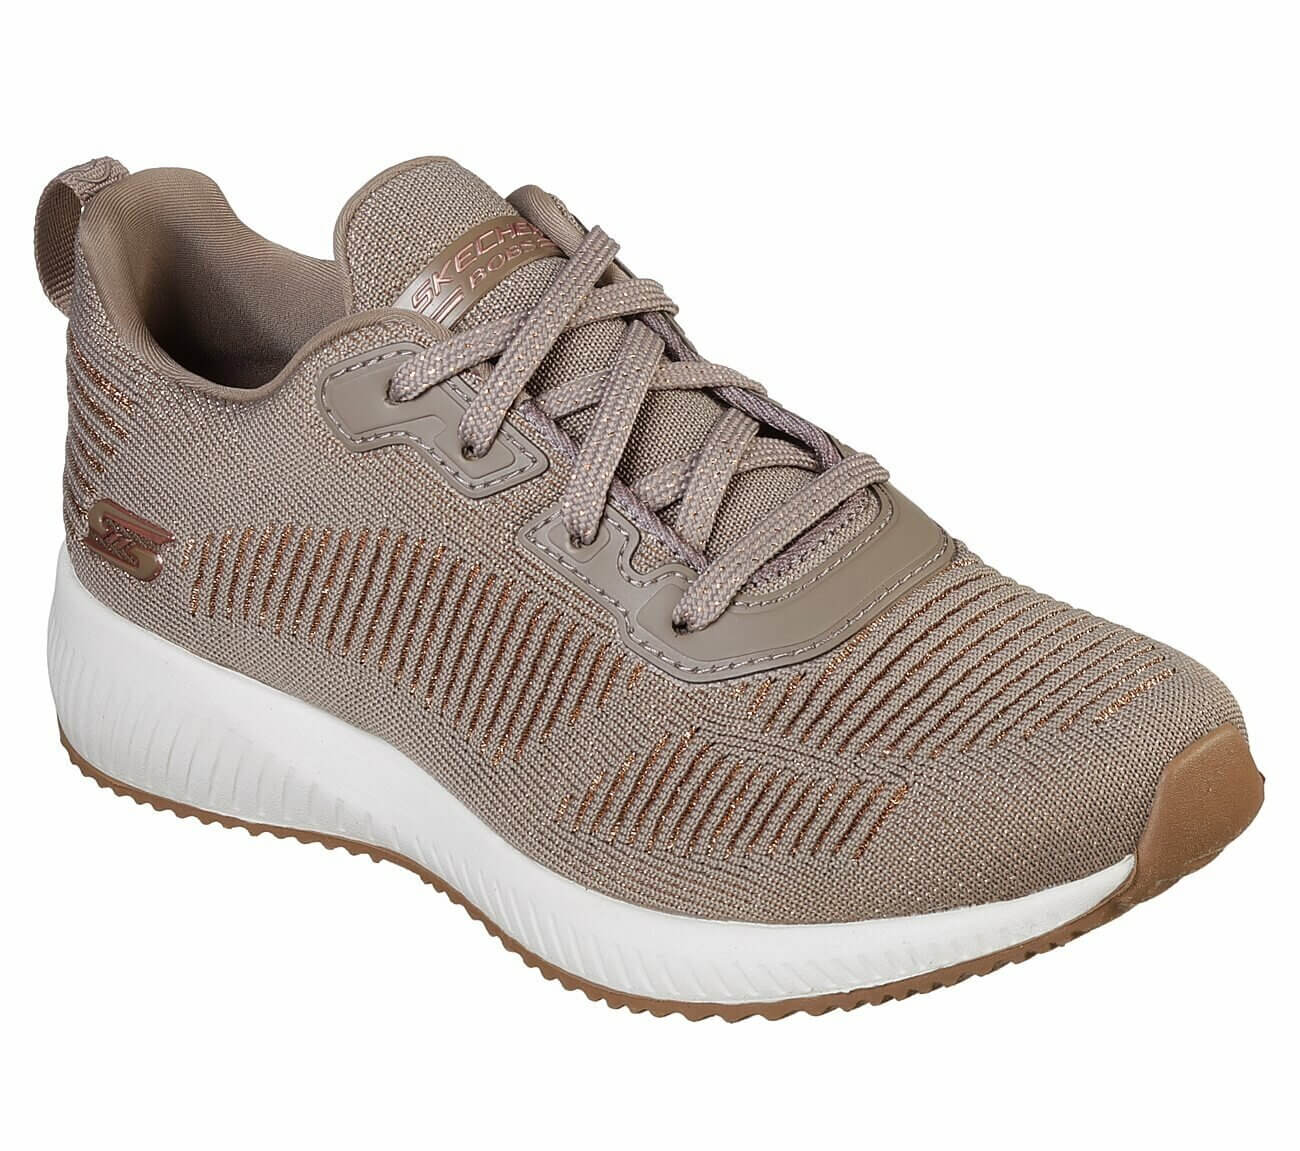 Taupe Skechers